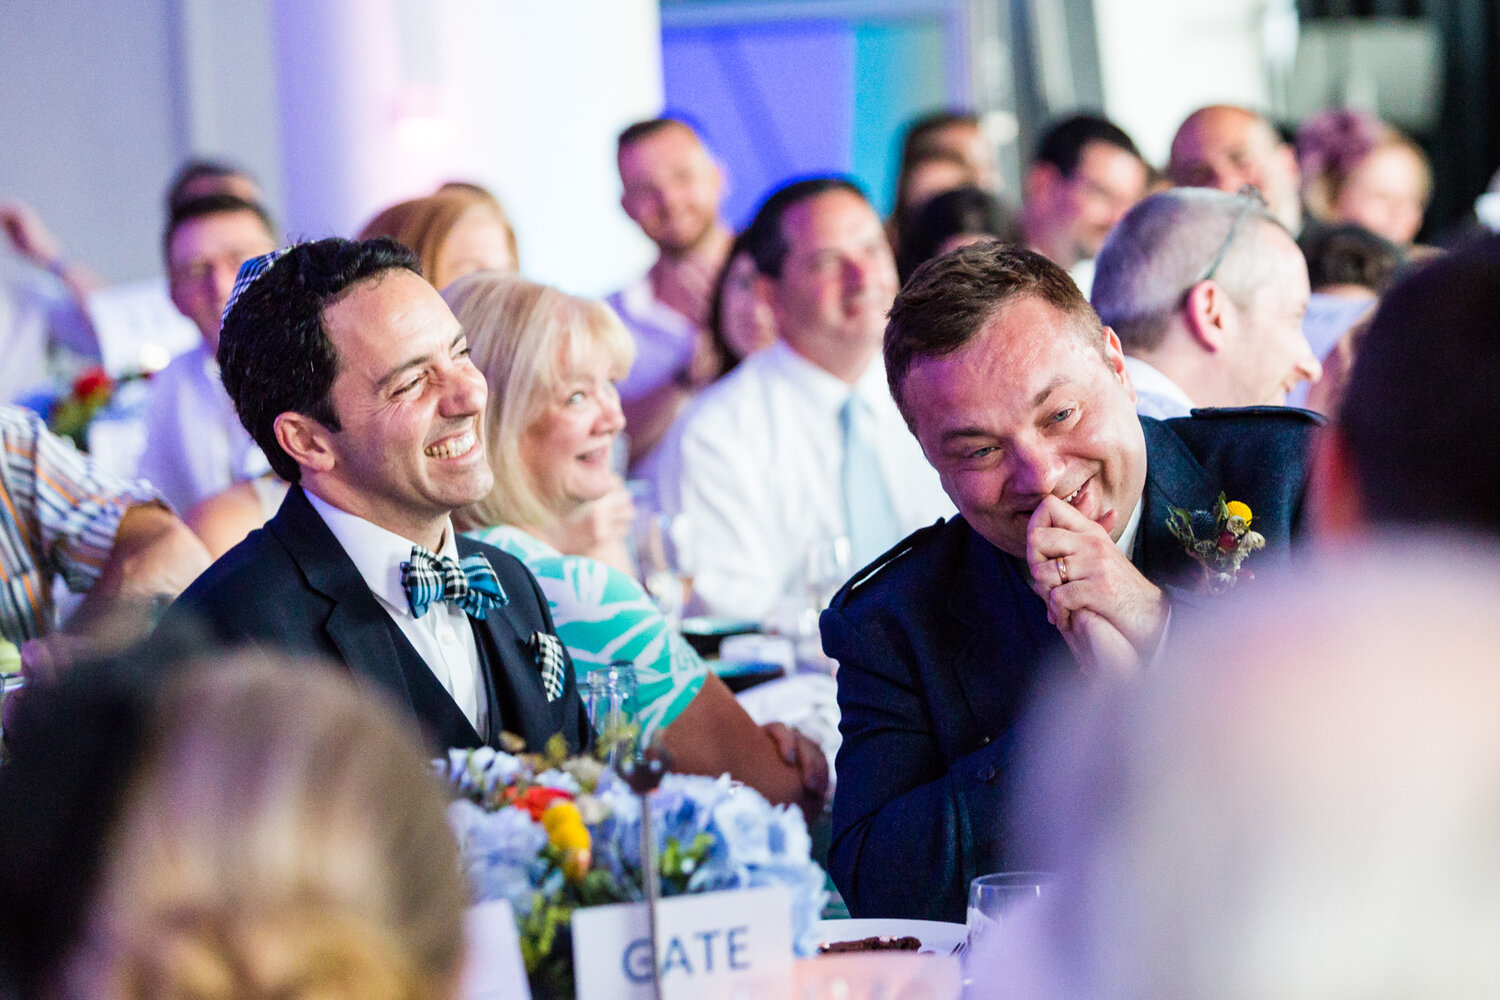 Two groom laugh at their wedding day speeches